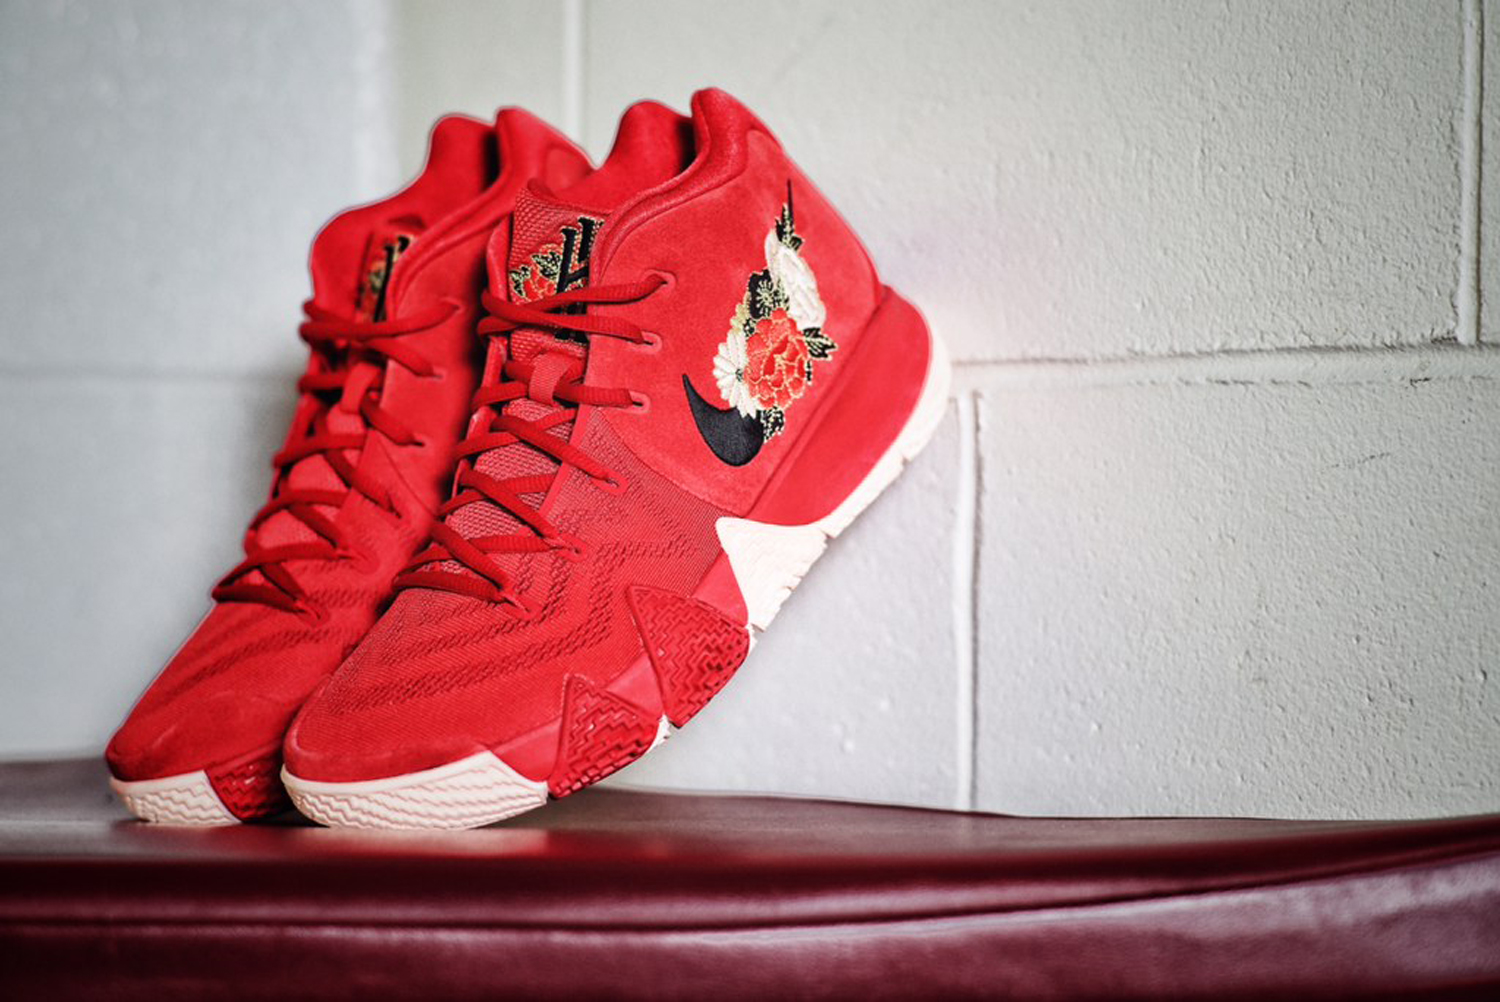 best service 26fe5 226bc This Nike Kyrie 4 'Chinese New Year' is Inspired by ...